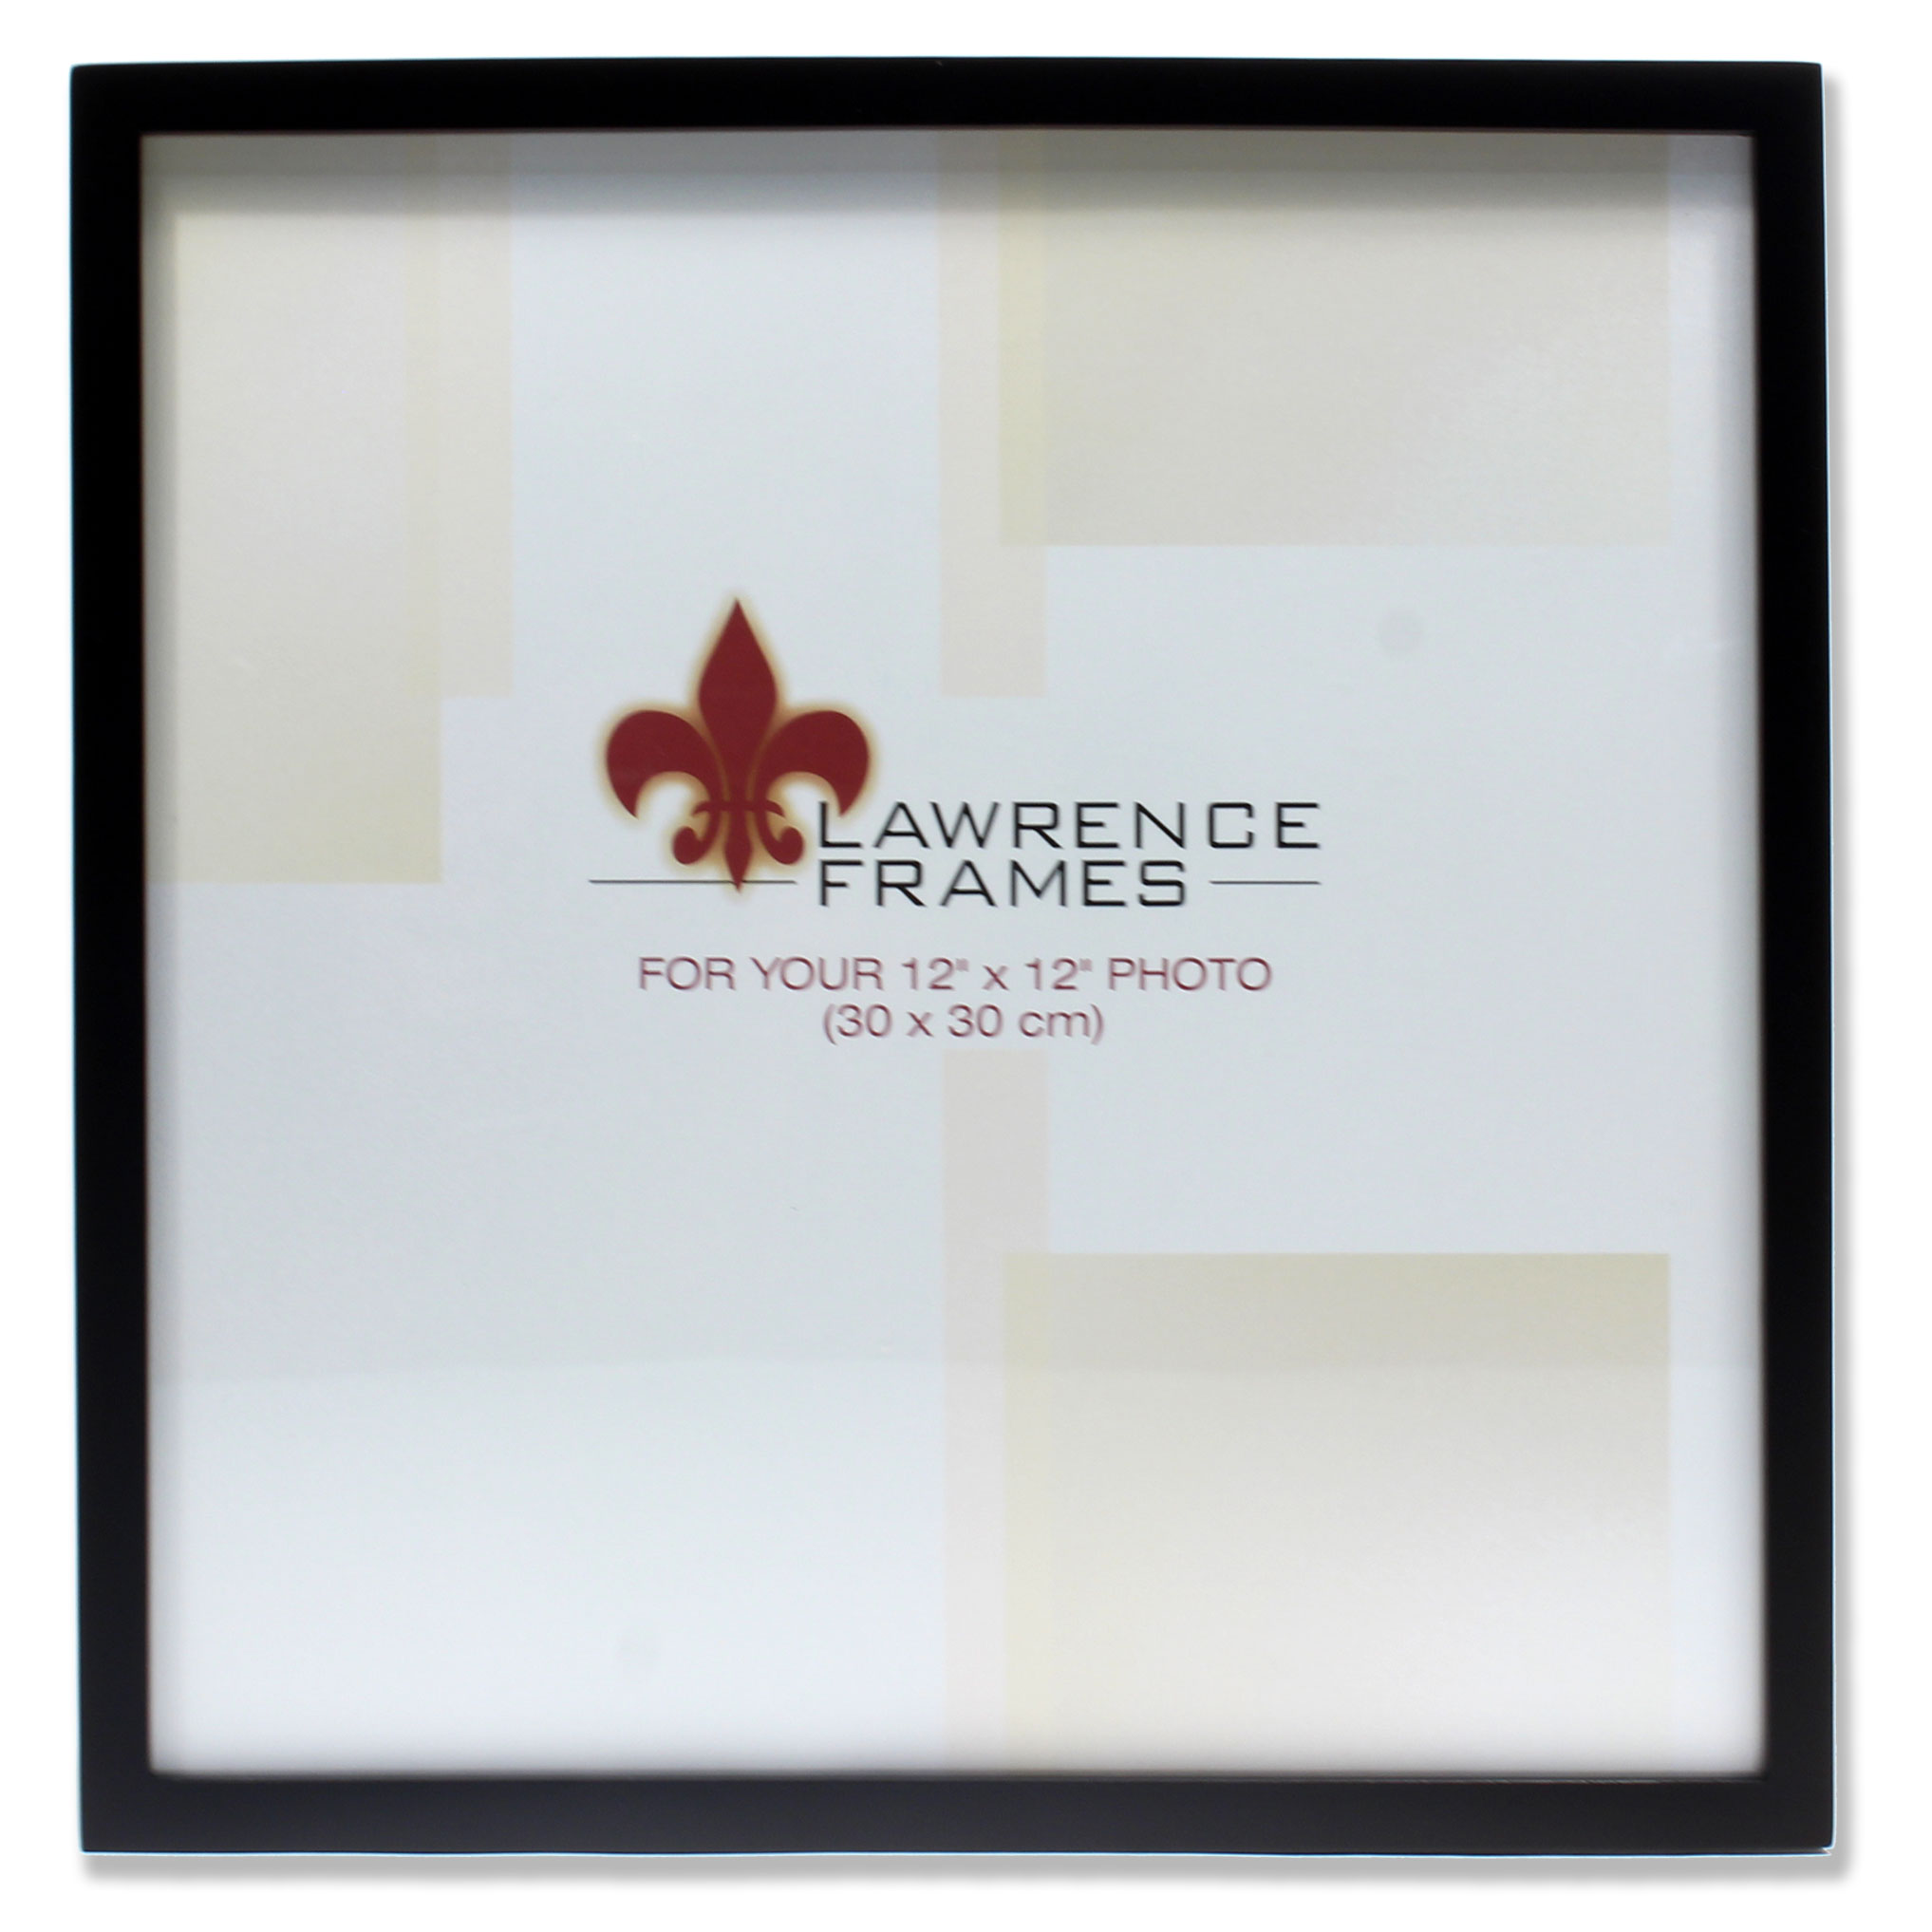 755512 Black Wood 12x12 Picture Frame by Lawrence Frames